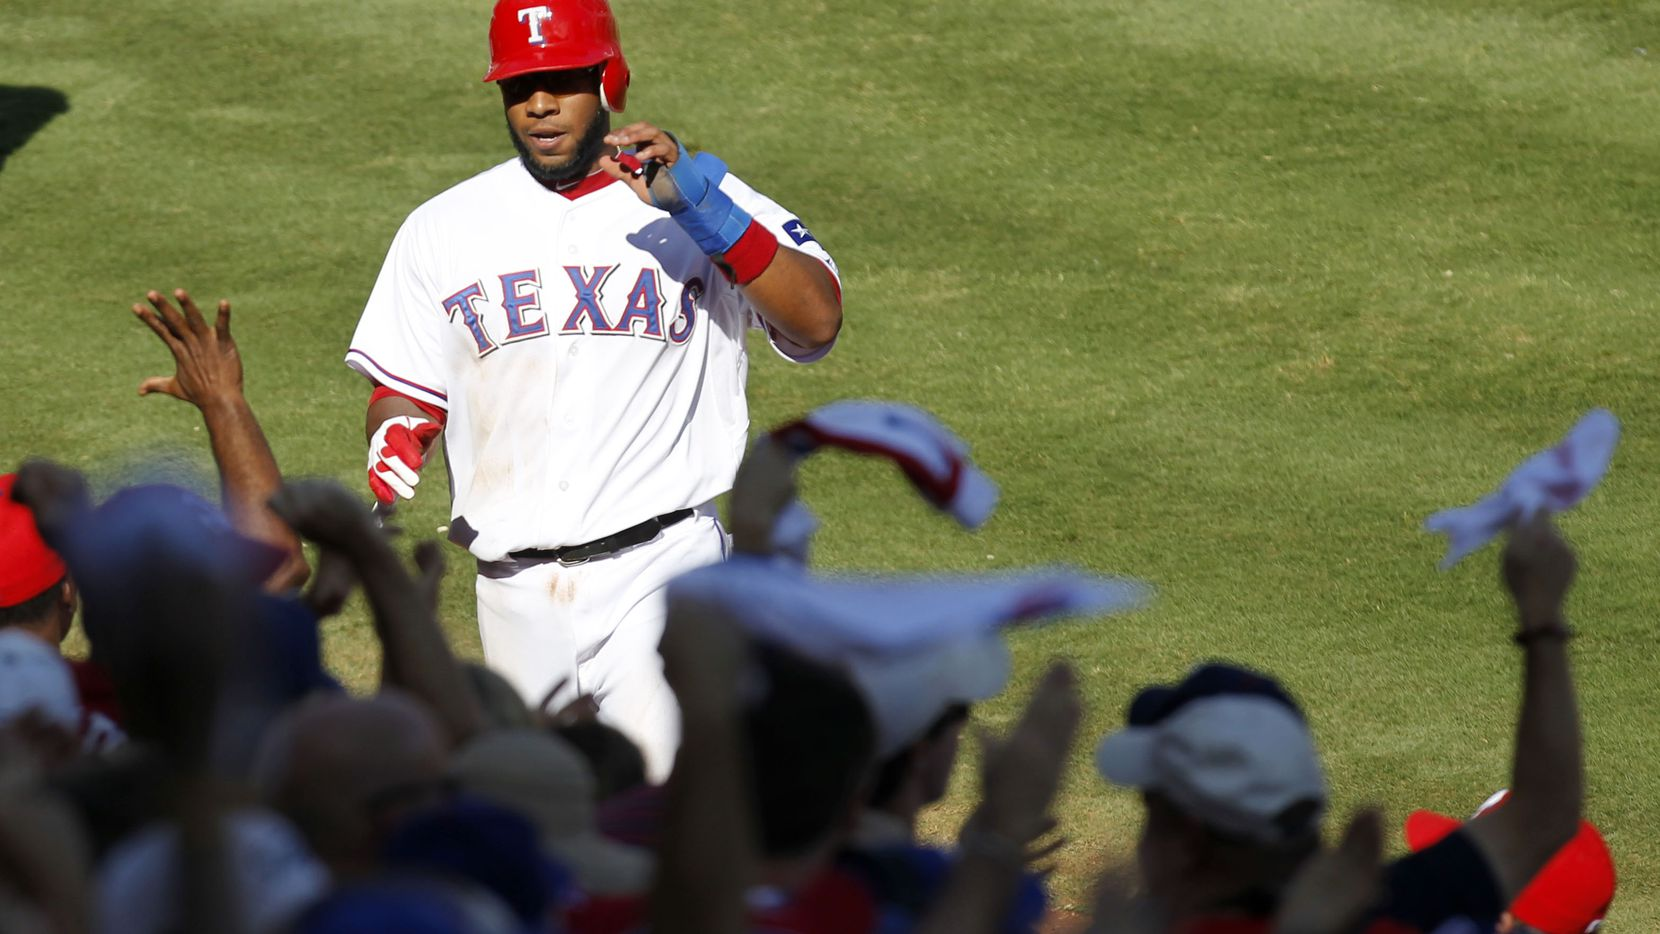 Texas Rangers shortstop Elvis Andrus walks into the dugout after scoring on a double by Josh Hamilton in the second inning of Game 2 of the American League Championship Series against the Detroit Tigers at Rangers Ballpark in Arlington, Monday, Oct. 10, 2011.  (Vernon Bryant/The Dallas Morning News)